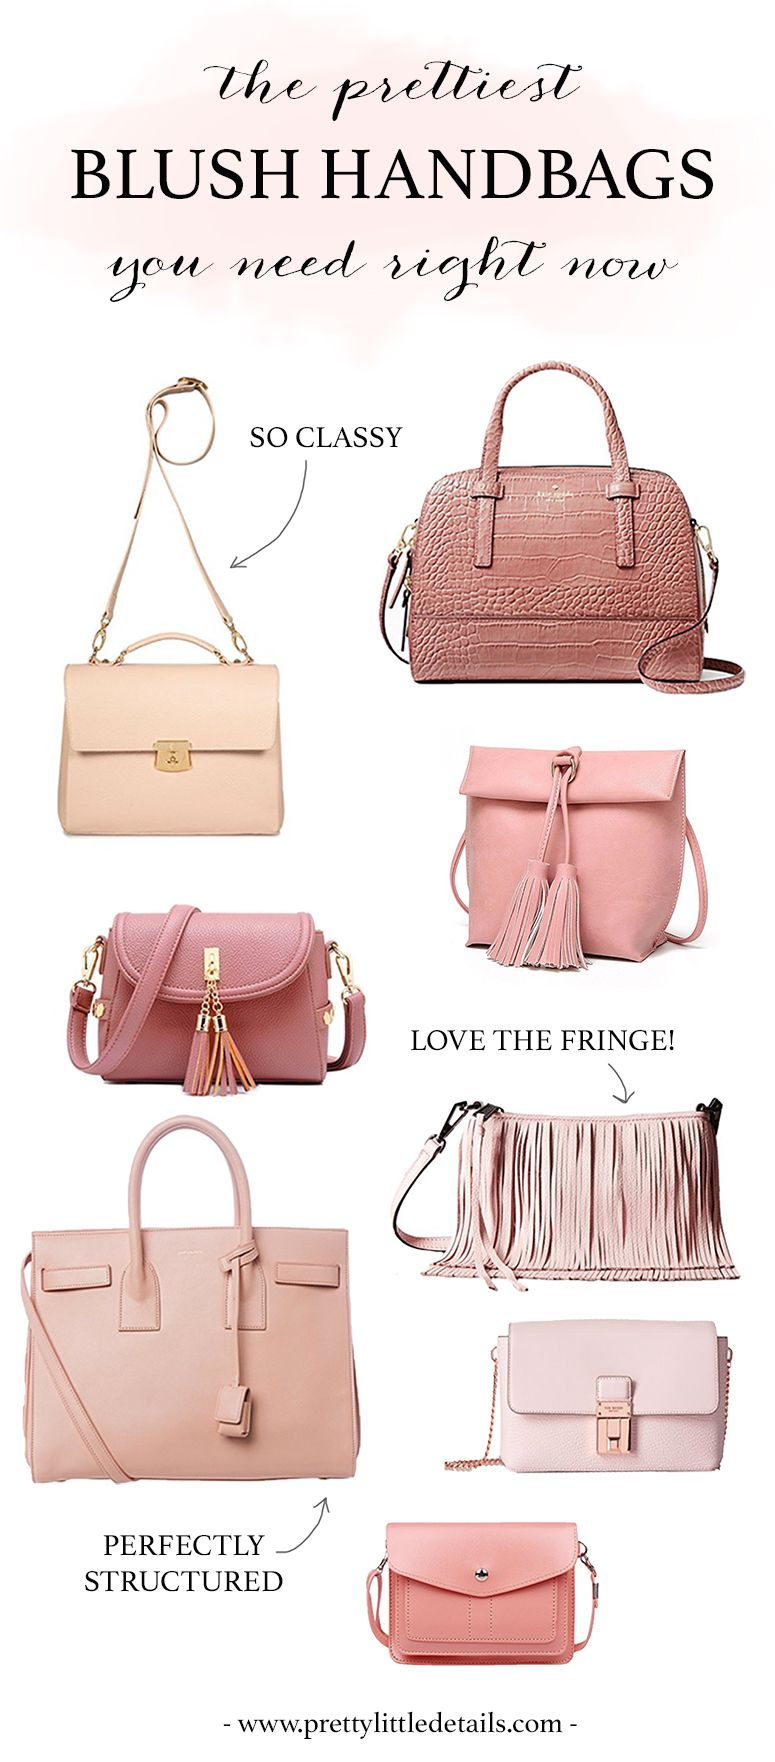 The Prettiest Blush Handbags